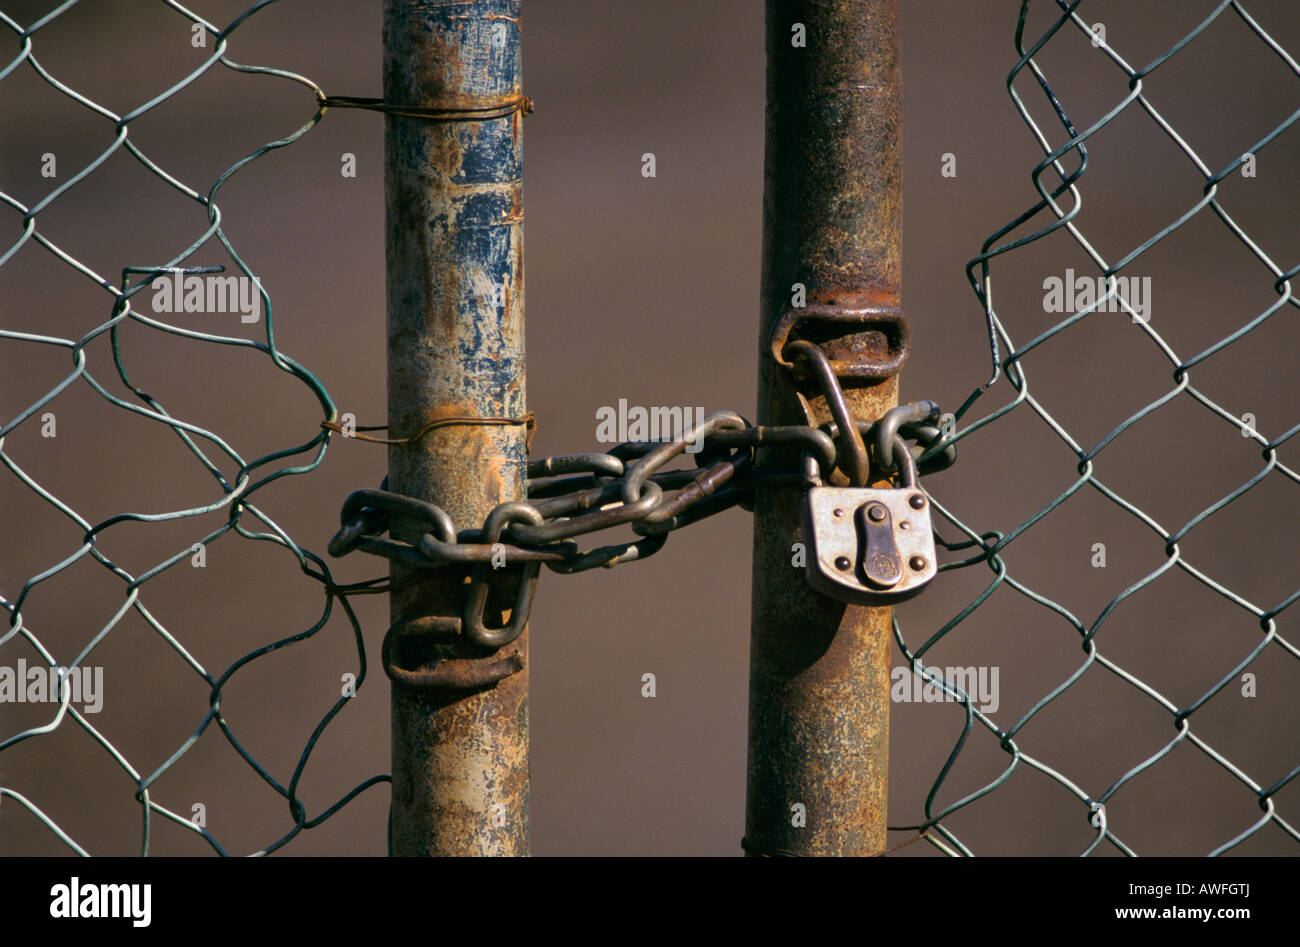 Chain link gate with chain and padlock, North Rhine-Westphalia, Germany, Europe - Stock Image